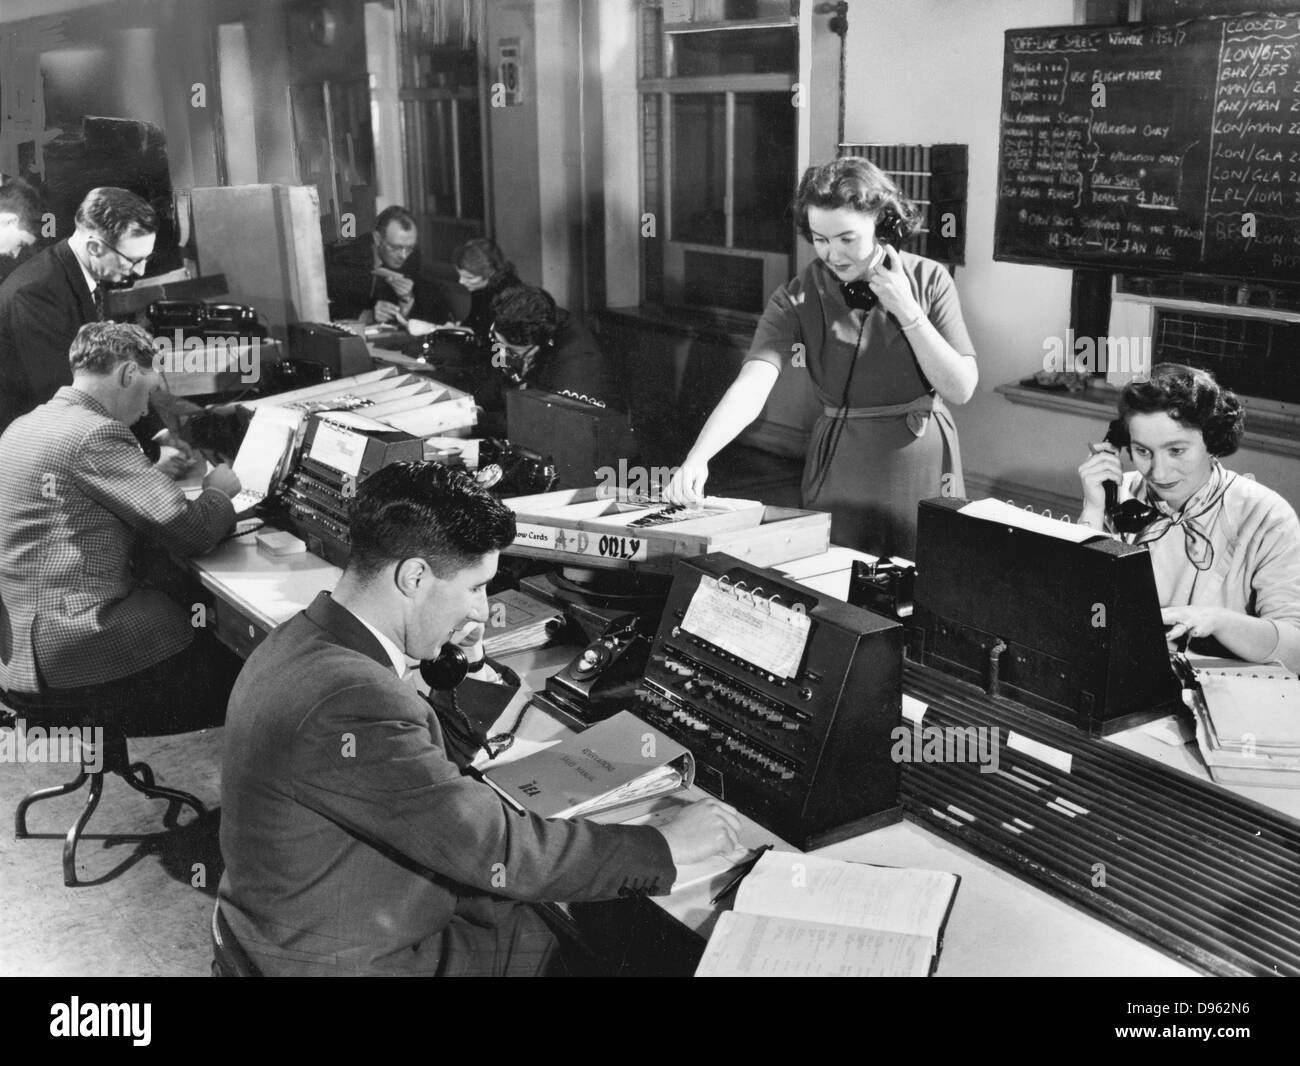 Song of the Clouds - telephone switchboard, 1956 - Stock Image